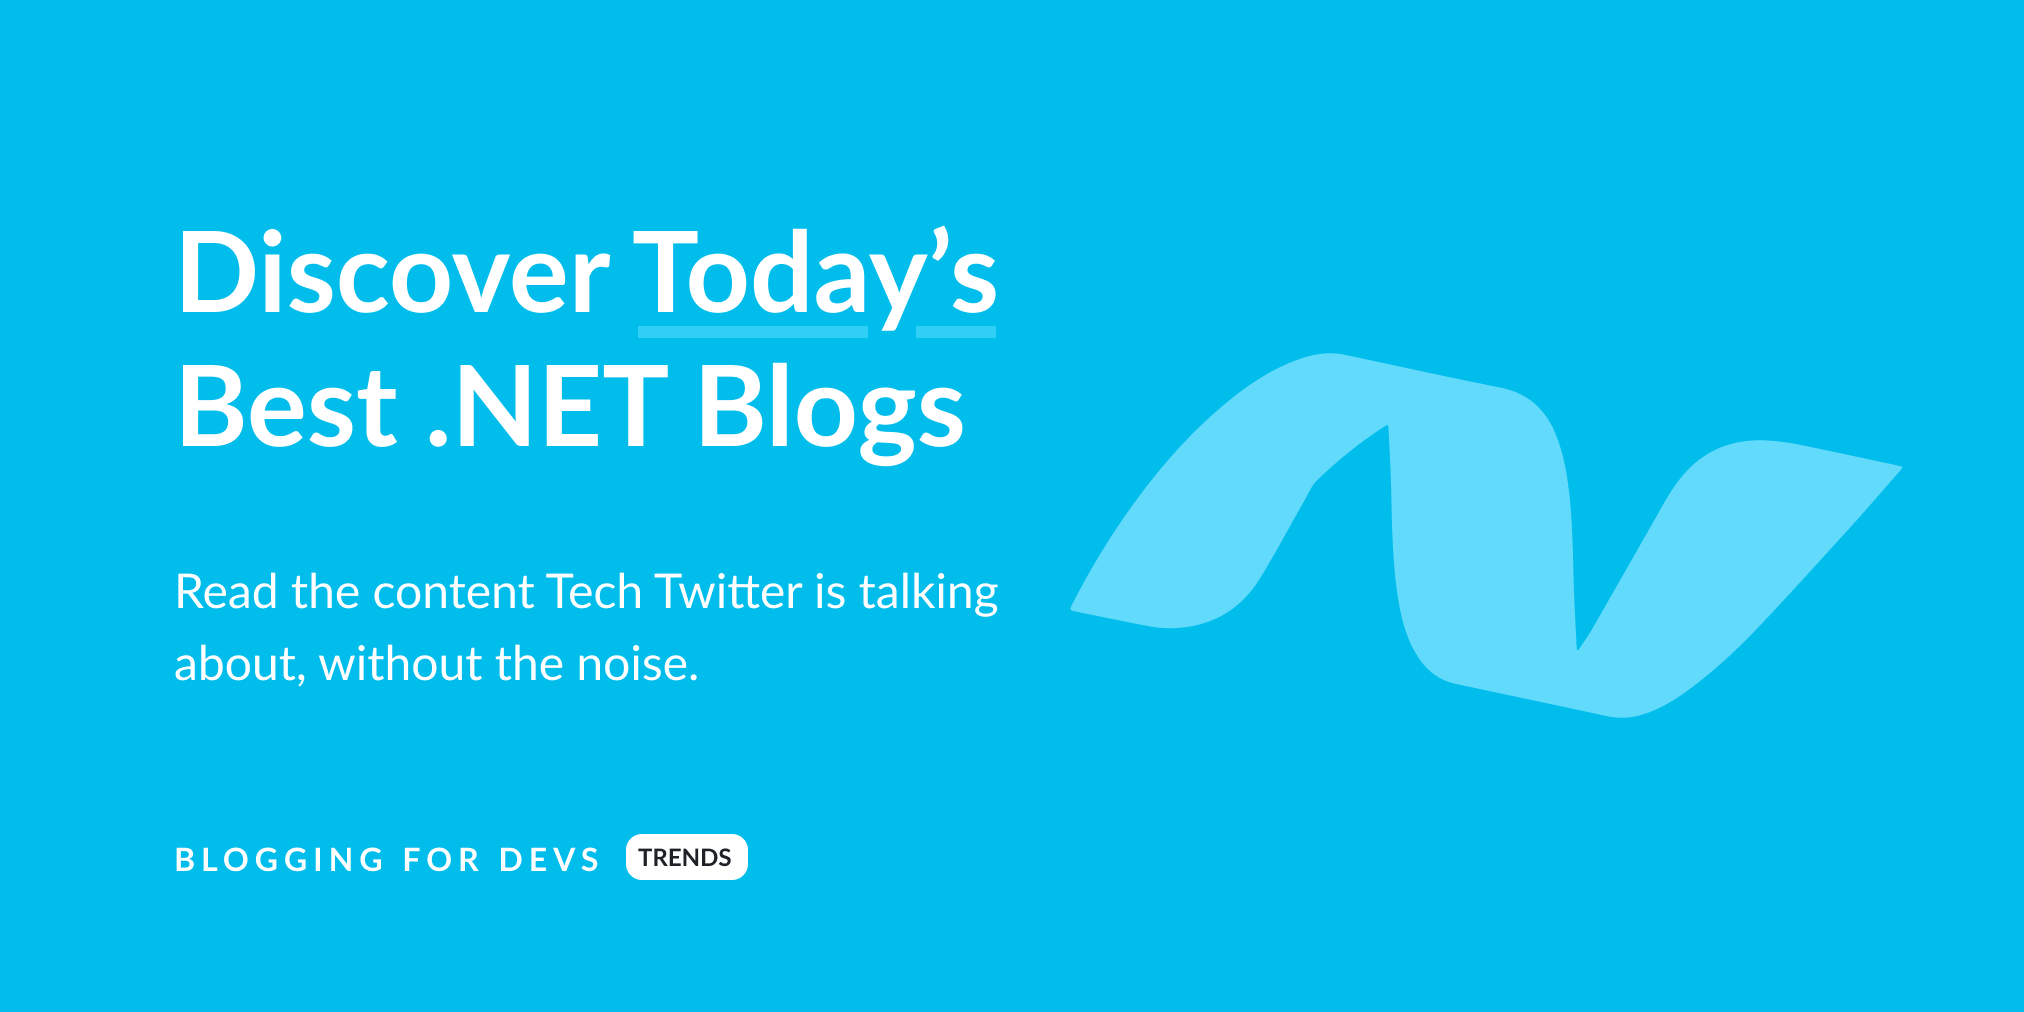 Best .NET Blogs